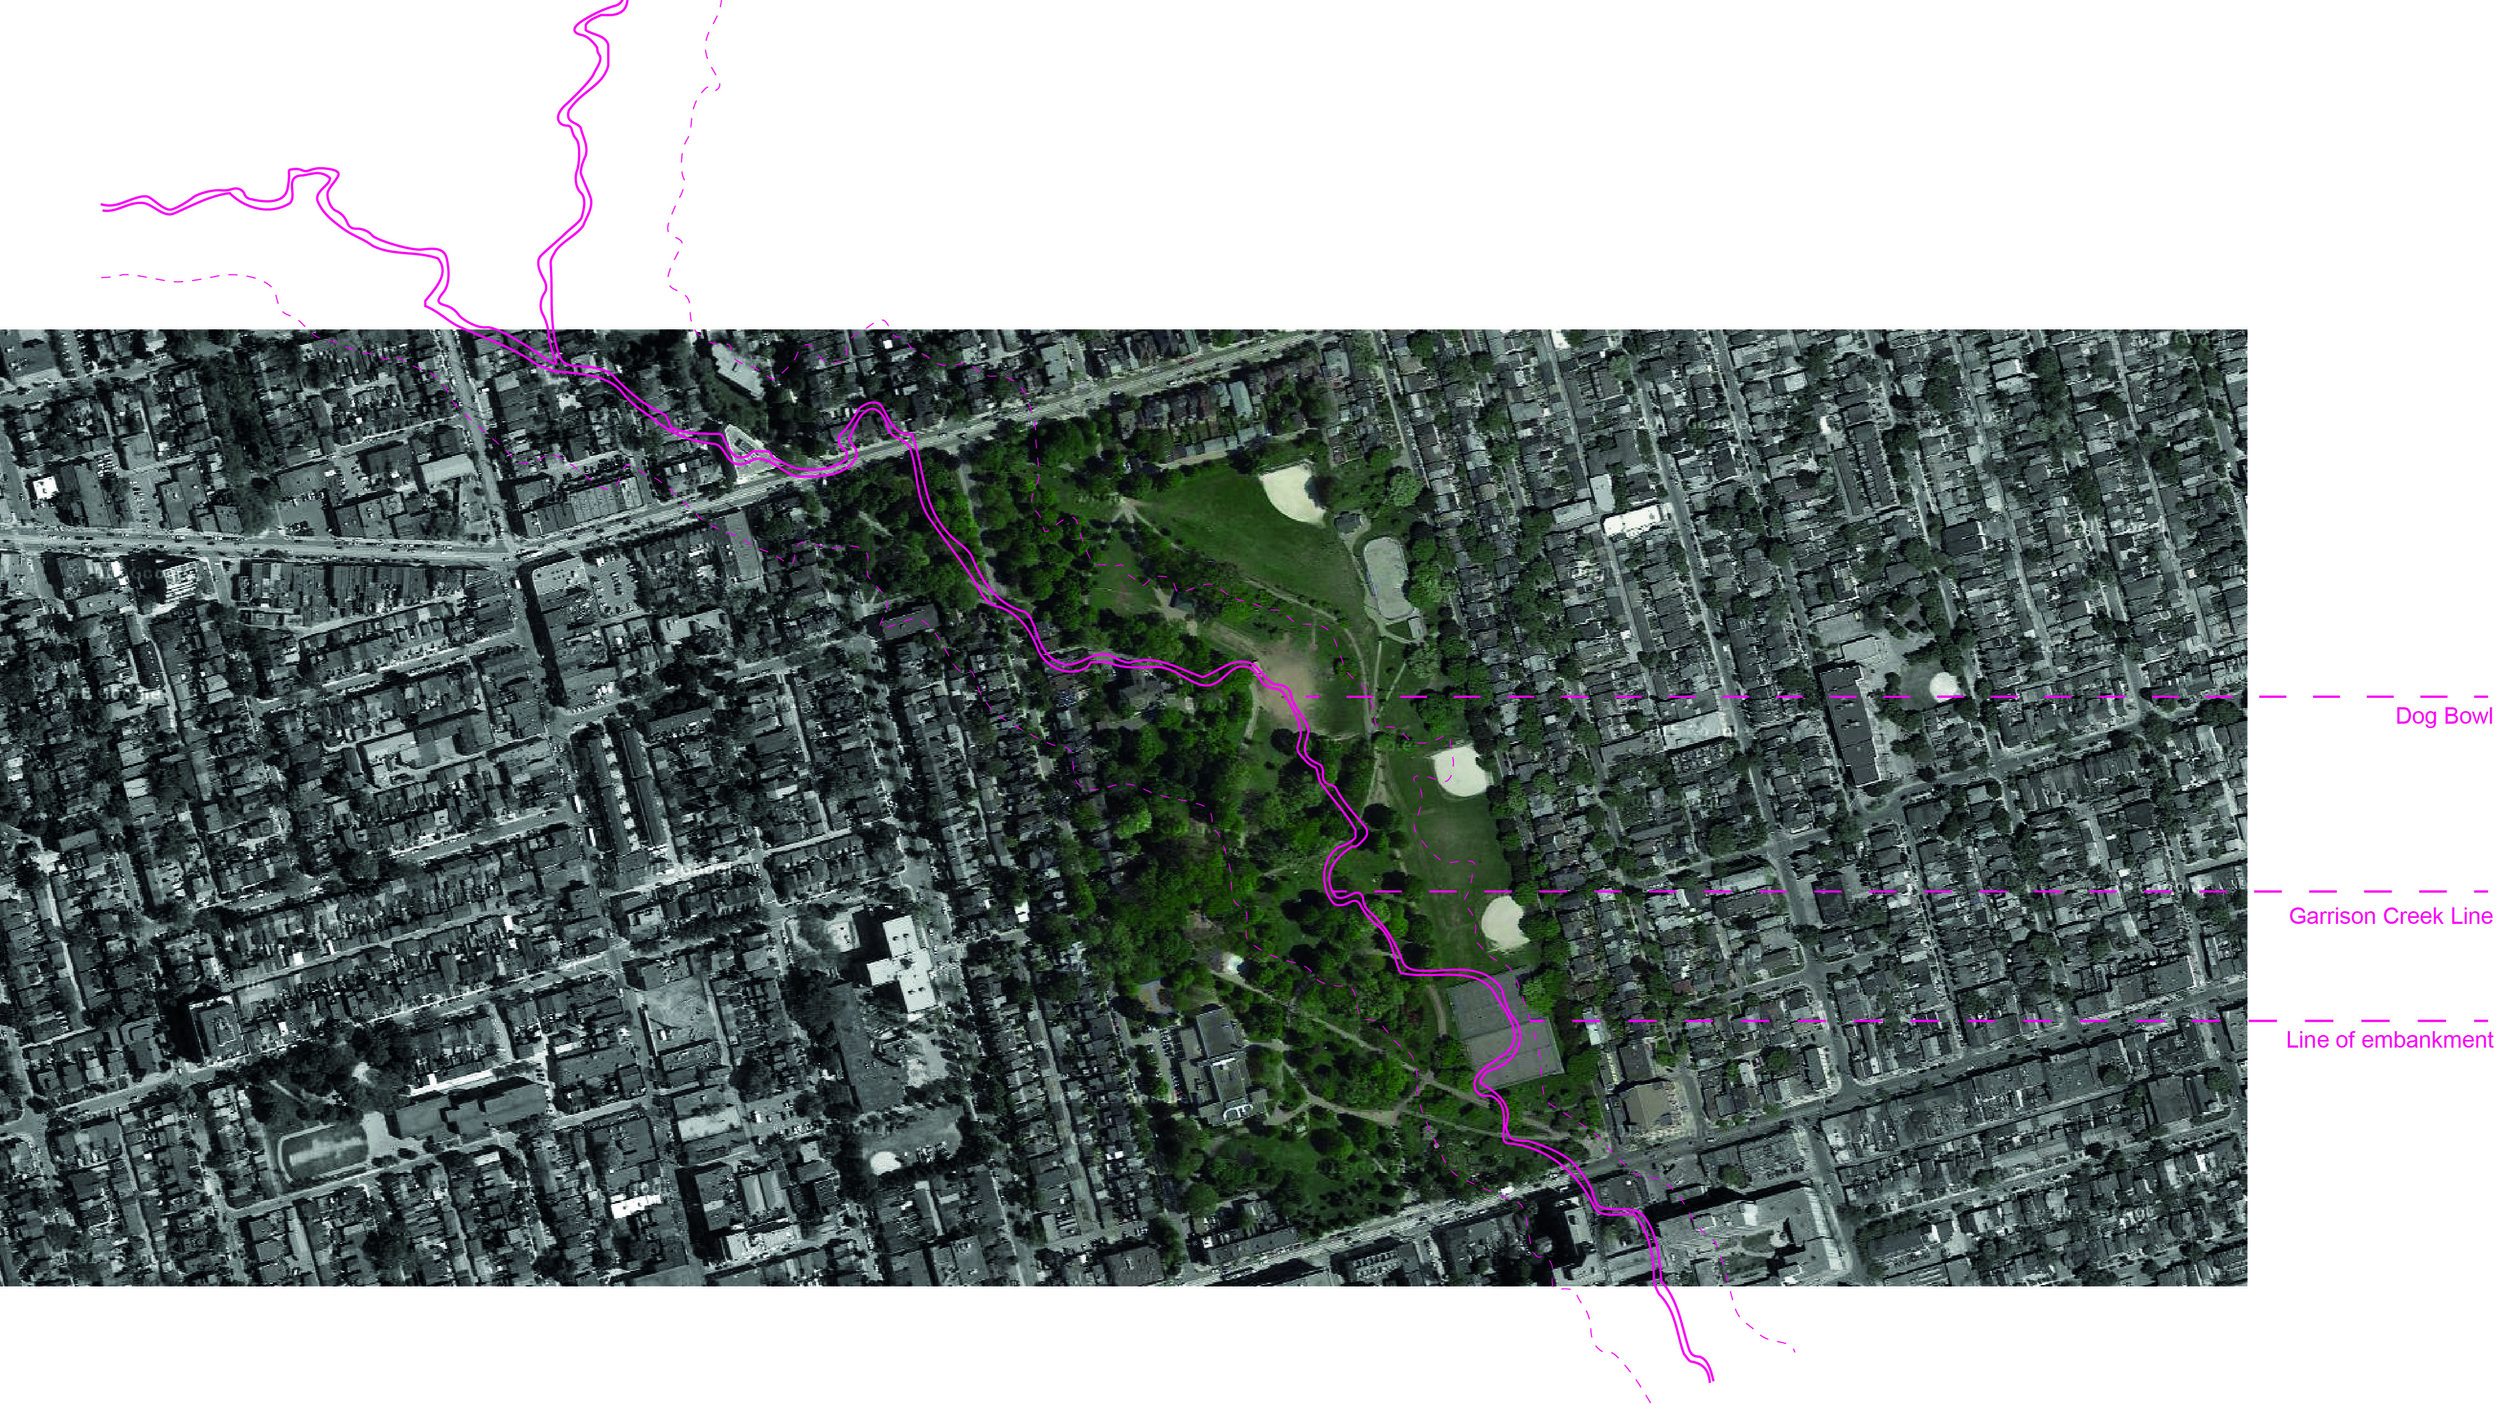 Map of Trinity Bellwoods Park with Garrison Creek Line. (By author)